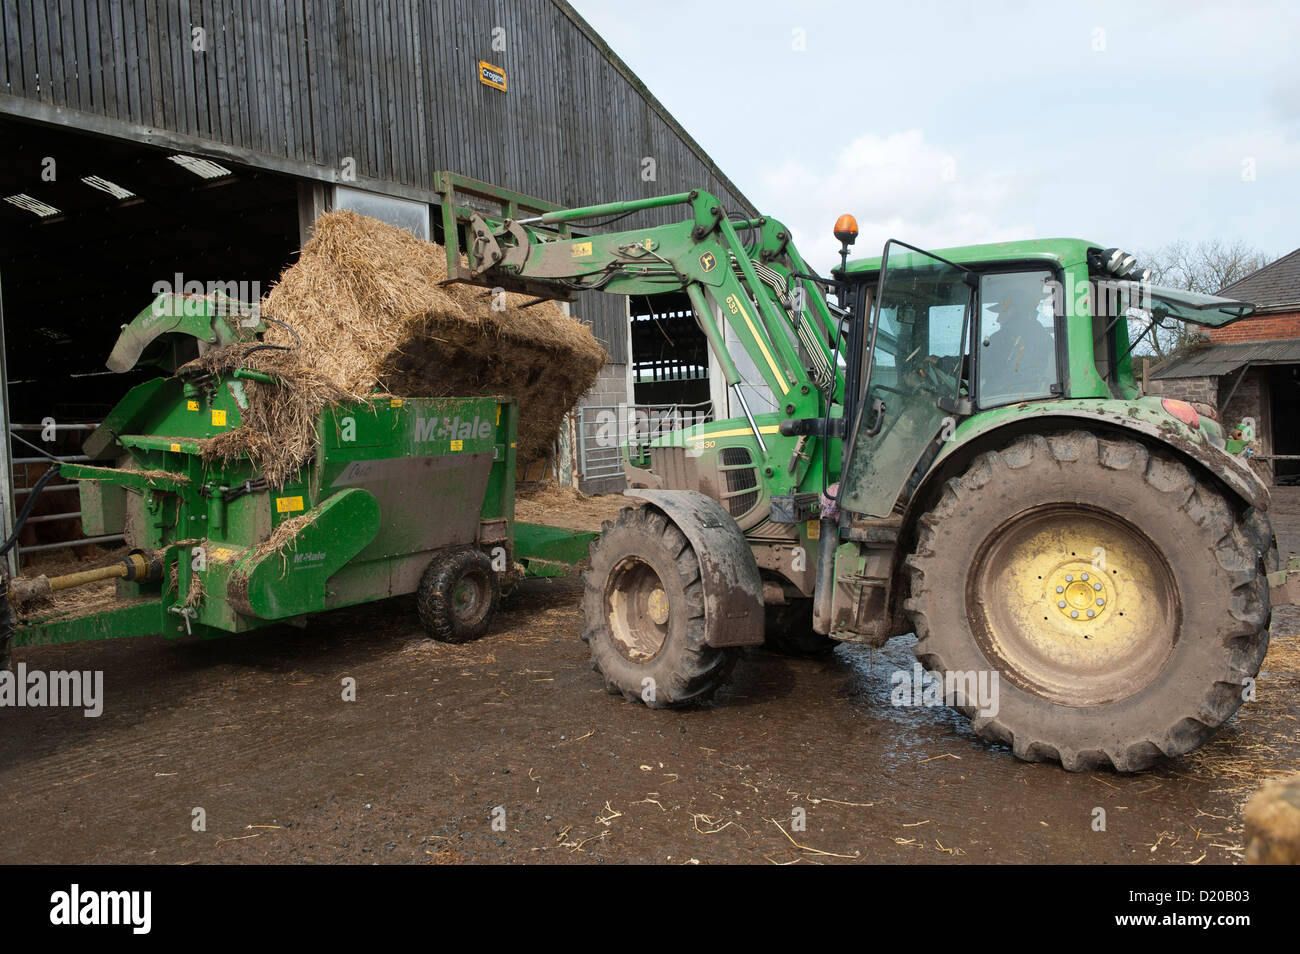 Loading bale of straw into straw chopper used to bed cattle pens. Northumberland, UK - Stock Image